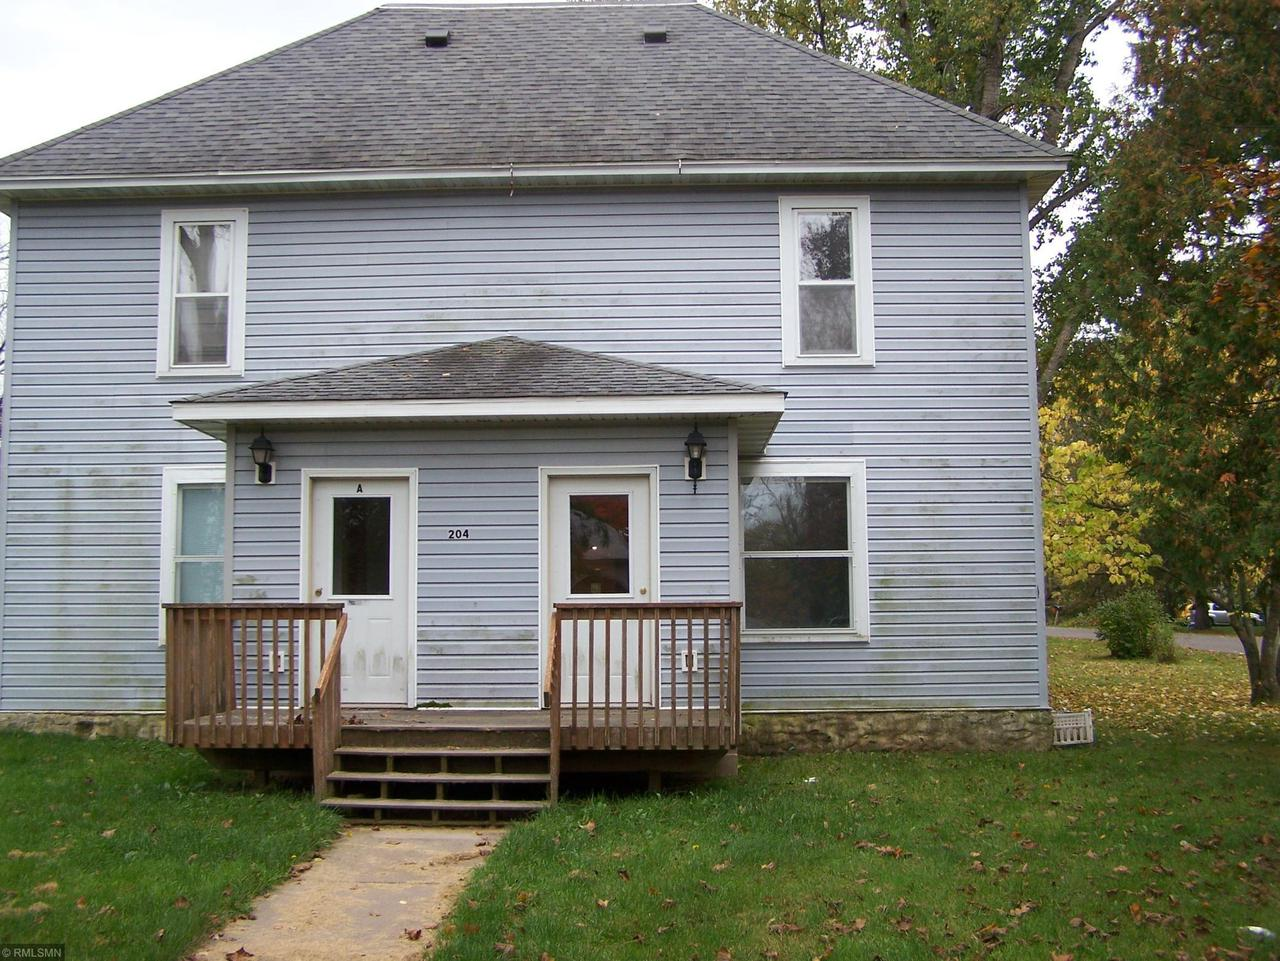 Great 4 bedroom, 2 bath and detached 2 car garage on a big lot in Milltown. House used to be a duplex and could be changed back into a duplex.